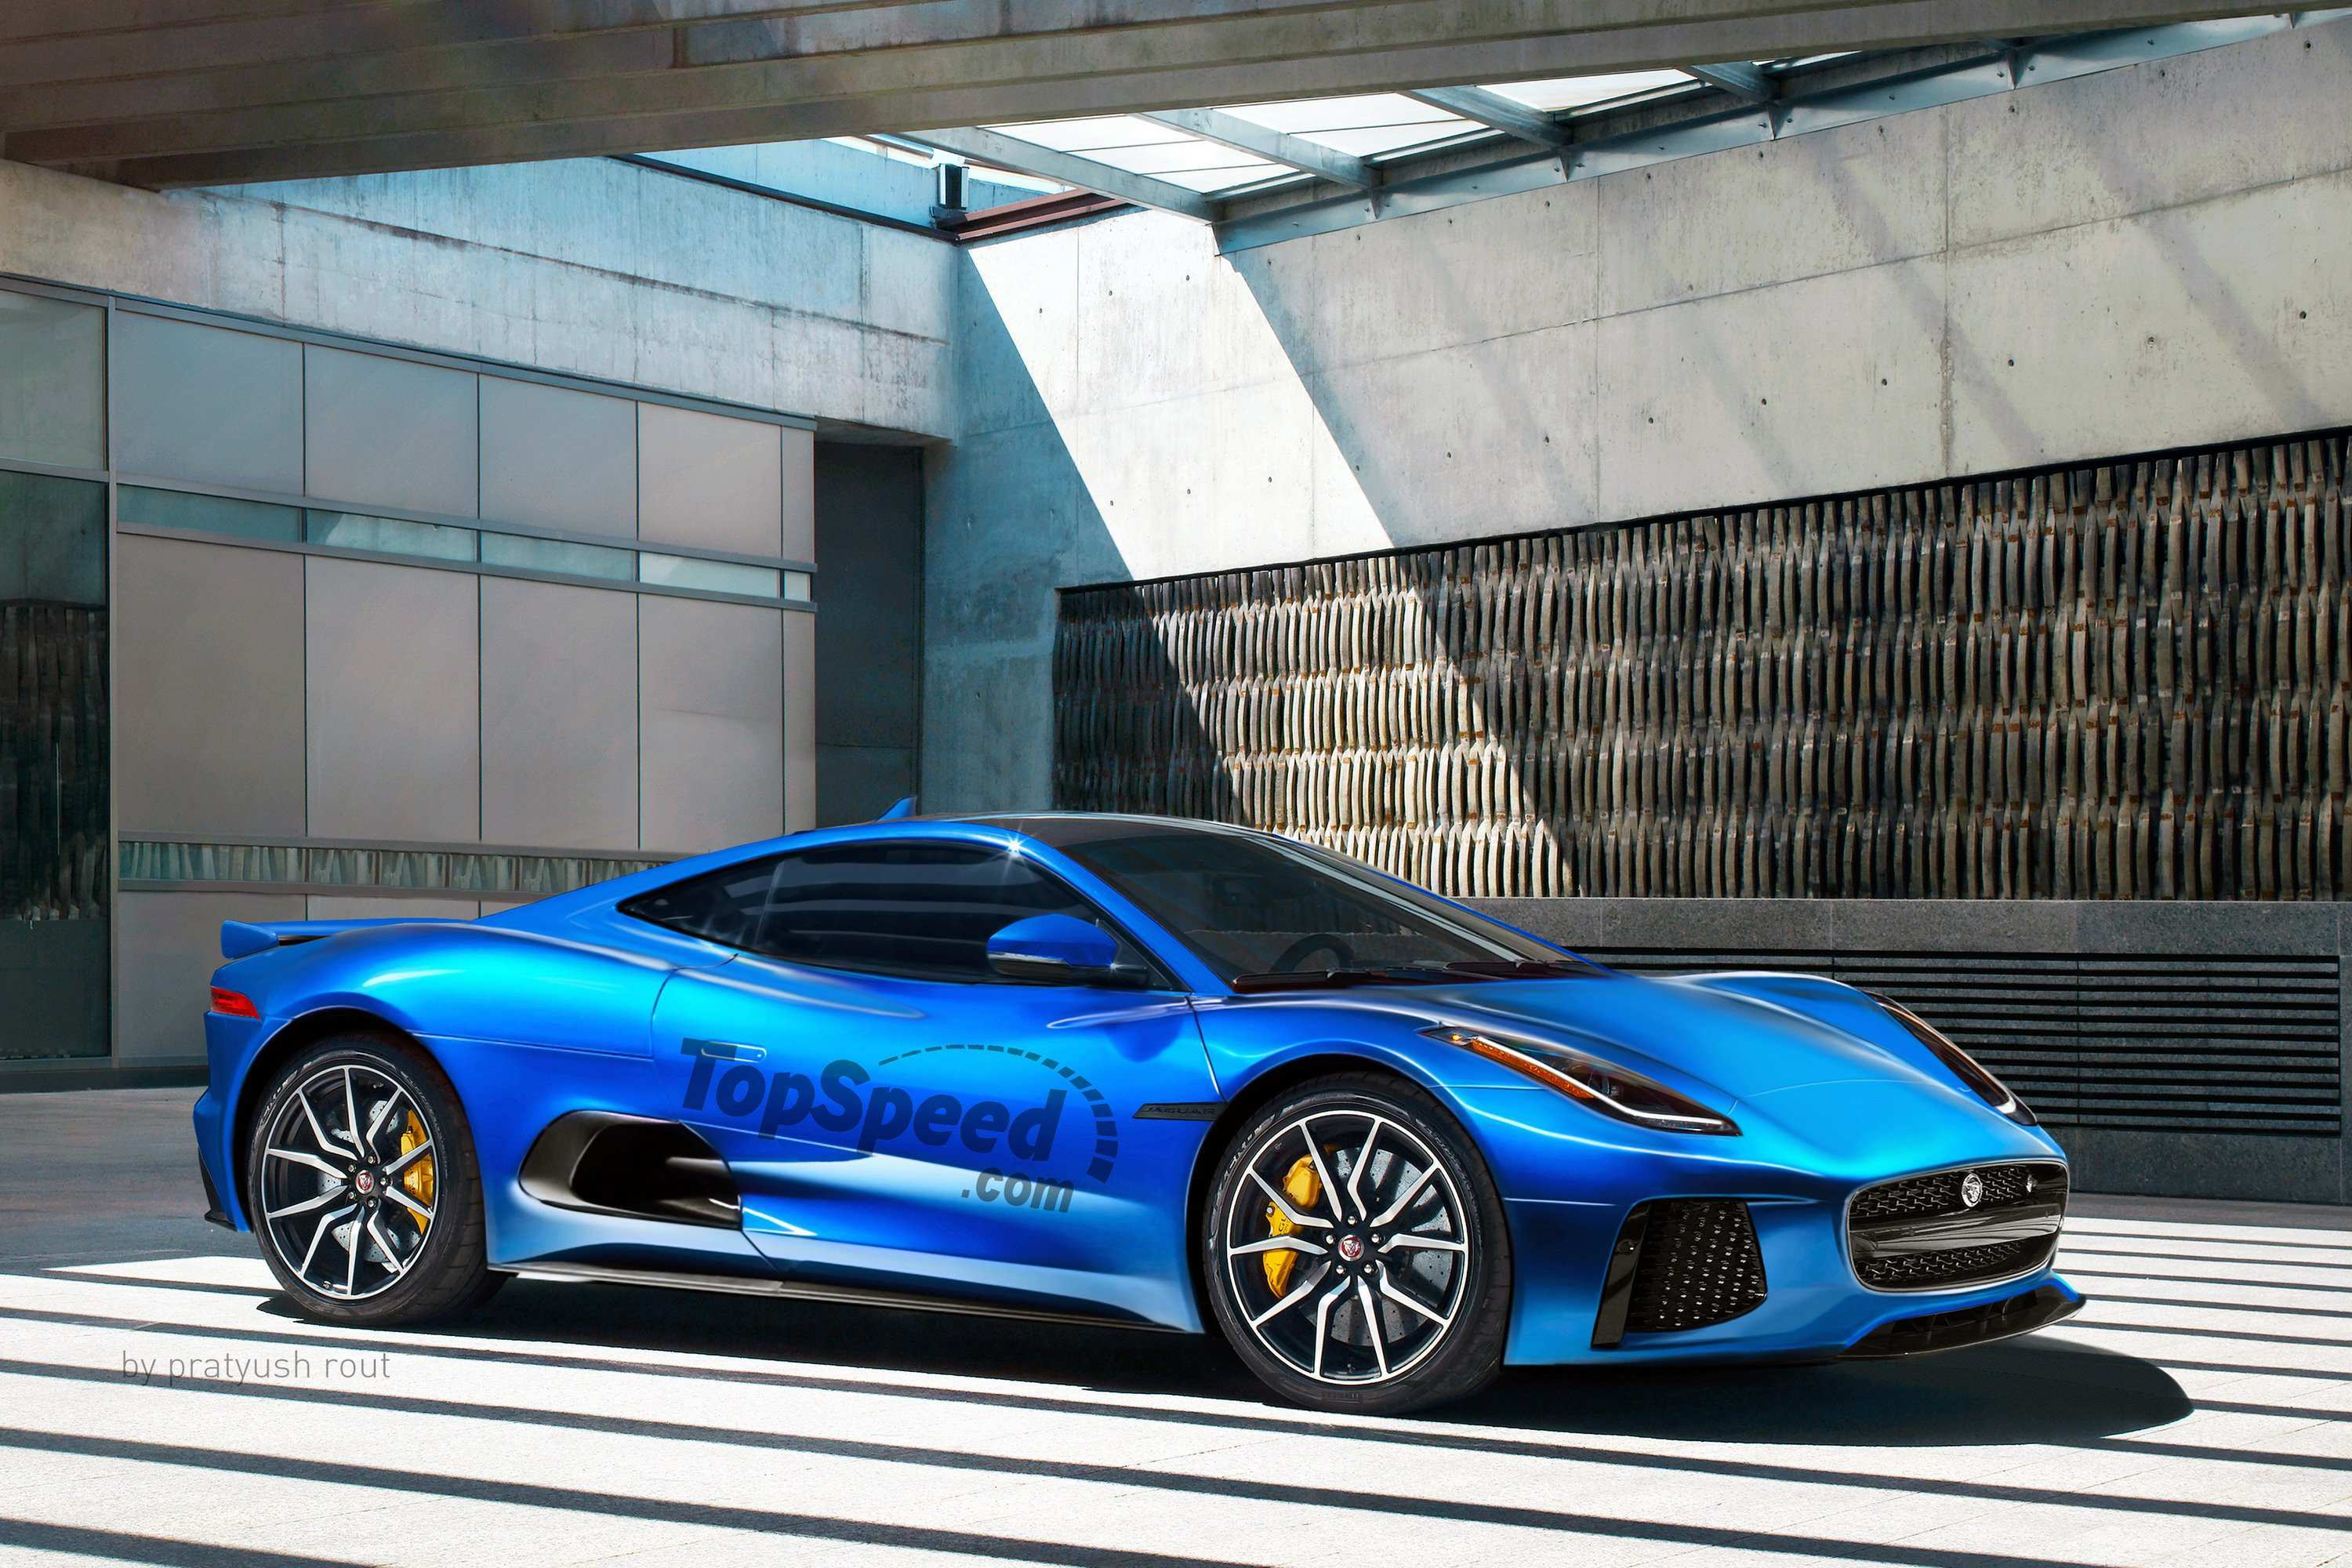 93 Gallery of Jaguar Sports Car 2020 Pictures for Jaguar Sports Car 2020